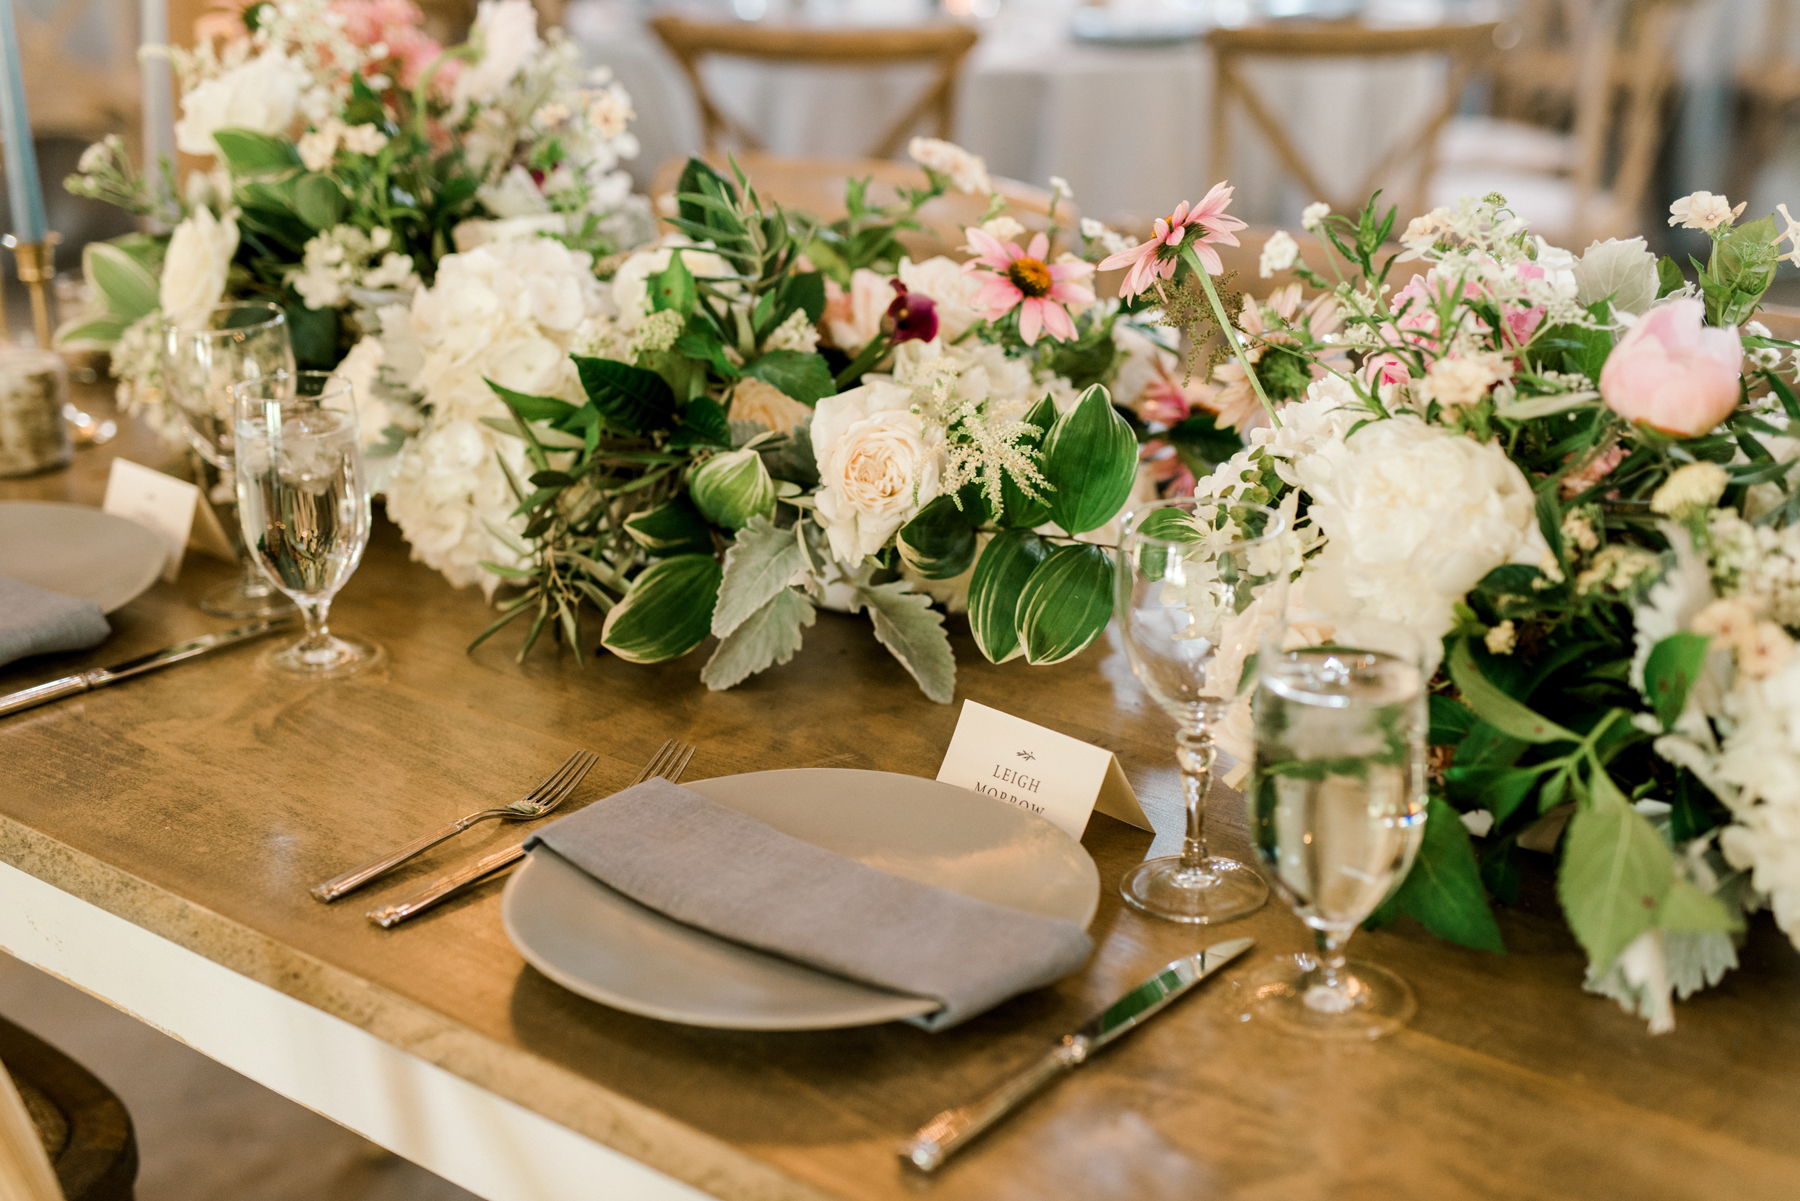 paige and kristine wedding table setting